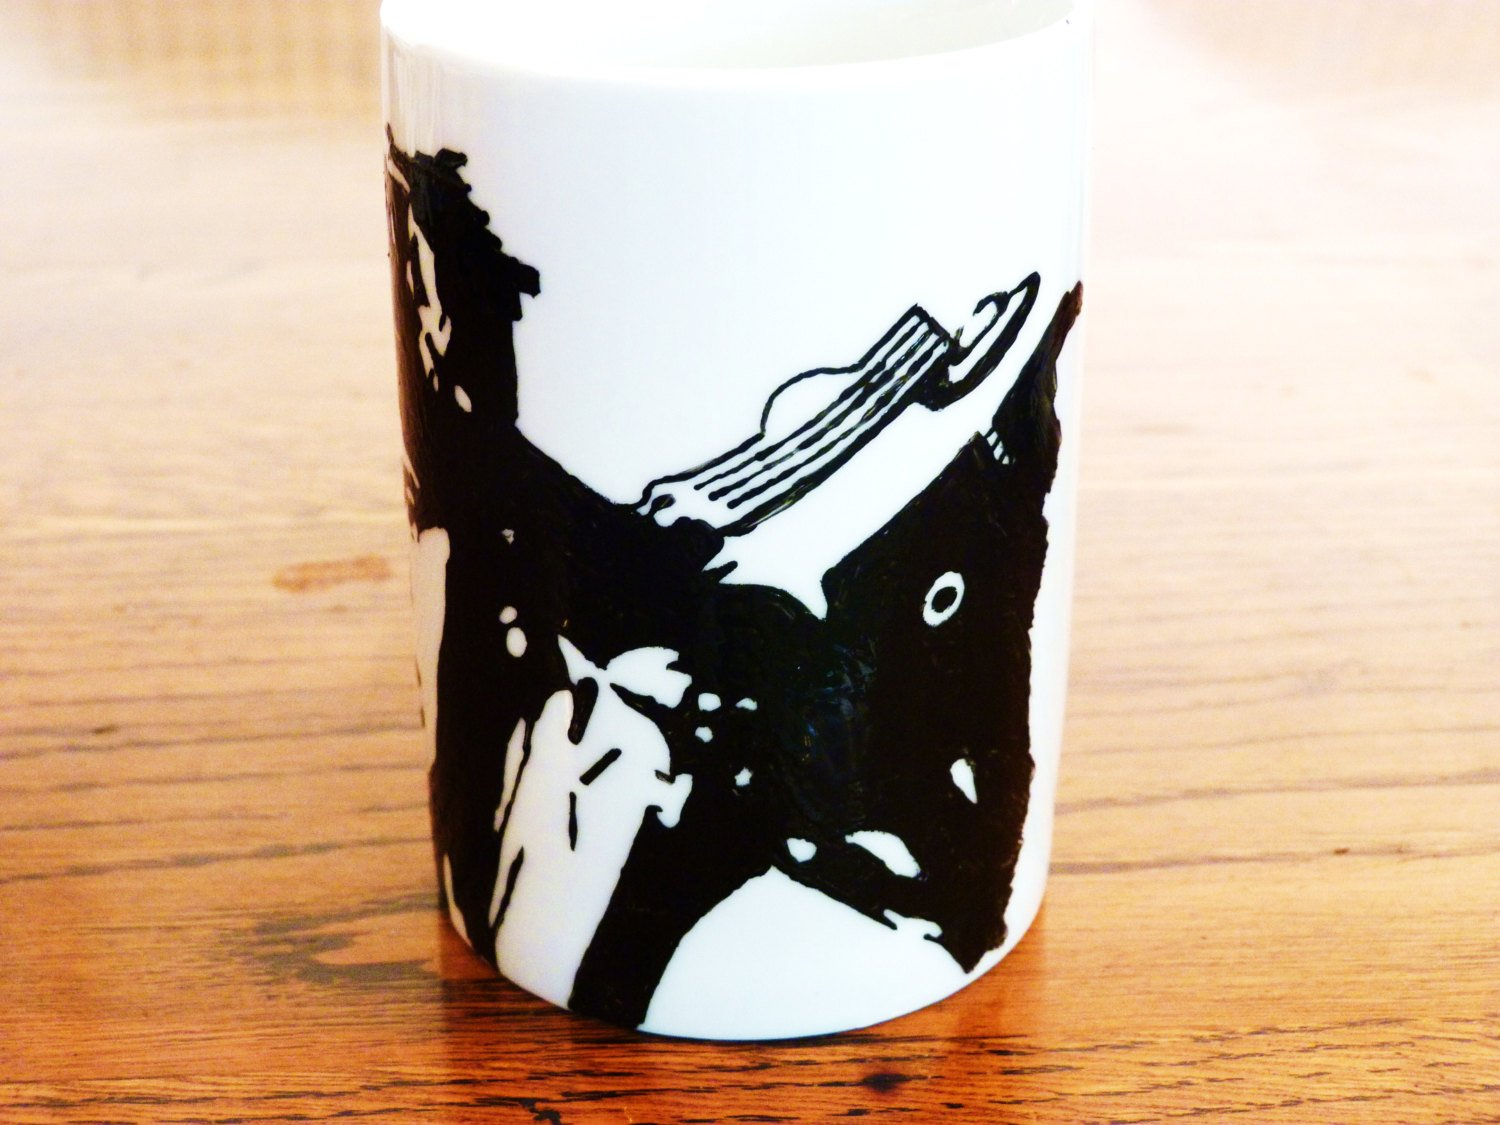 Dan Aykroyd, Ghostbusters, ray stanz, hand printed, hand painted, cup - ByCandlelight27